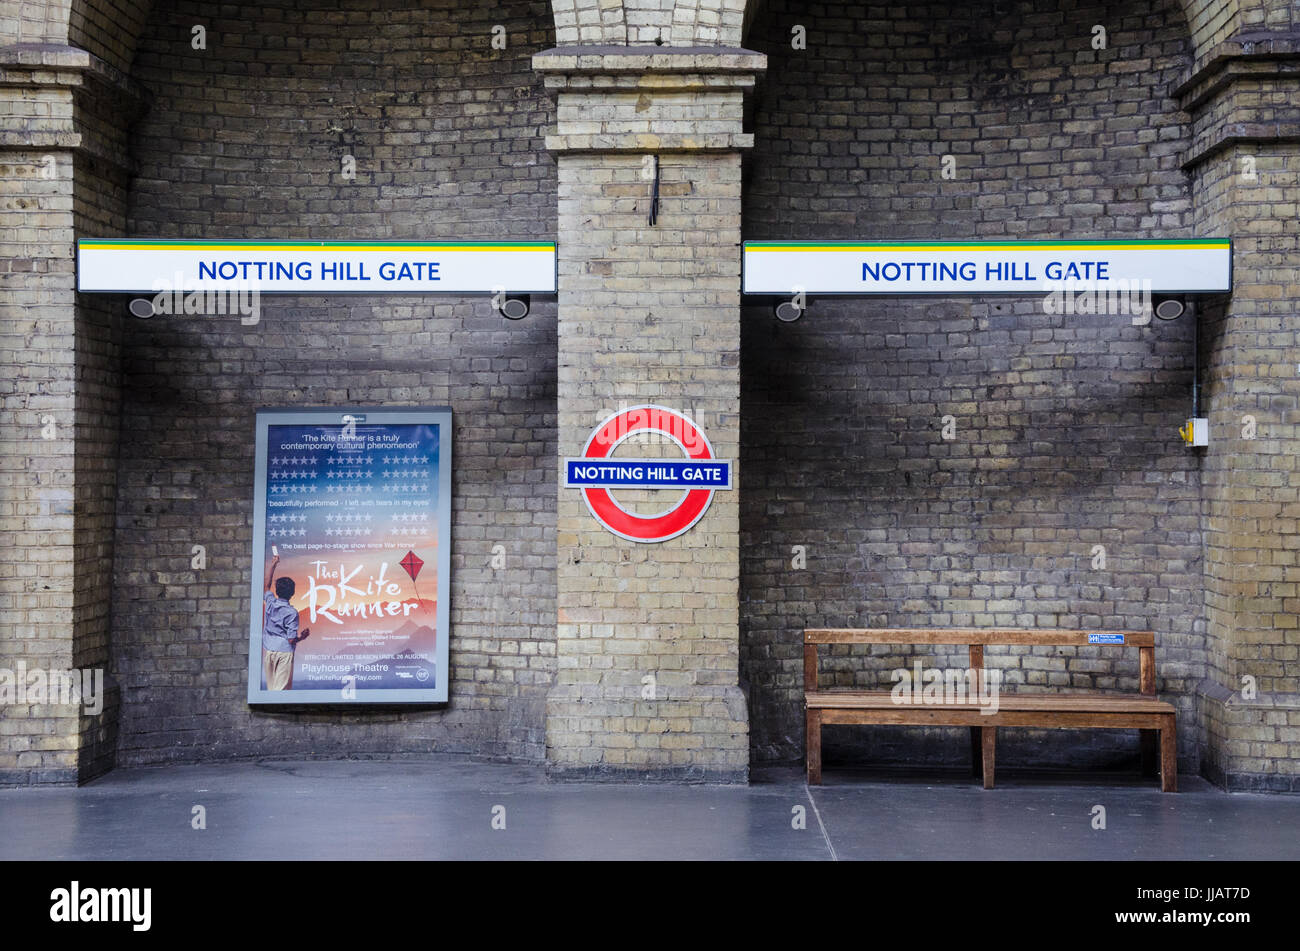 an-empty-platform-at-notting-hill-gate-london-underground-station-JJAT7D.jpg